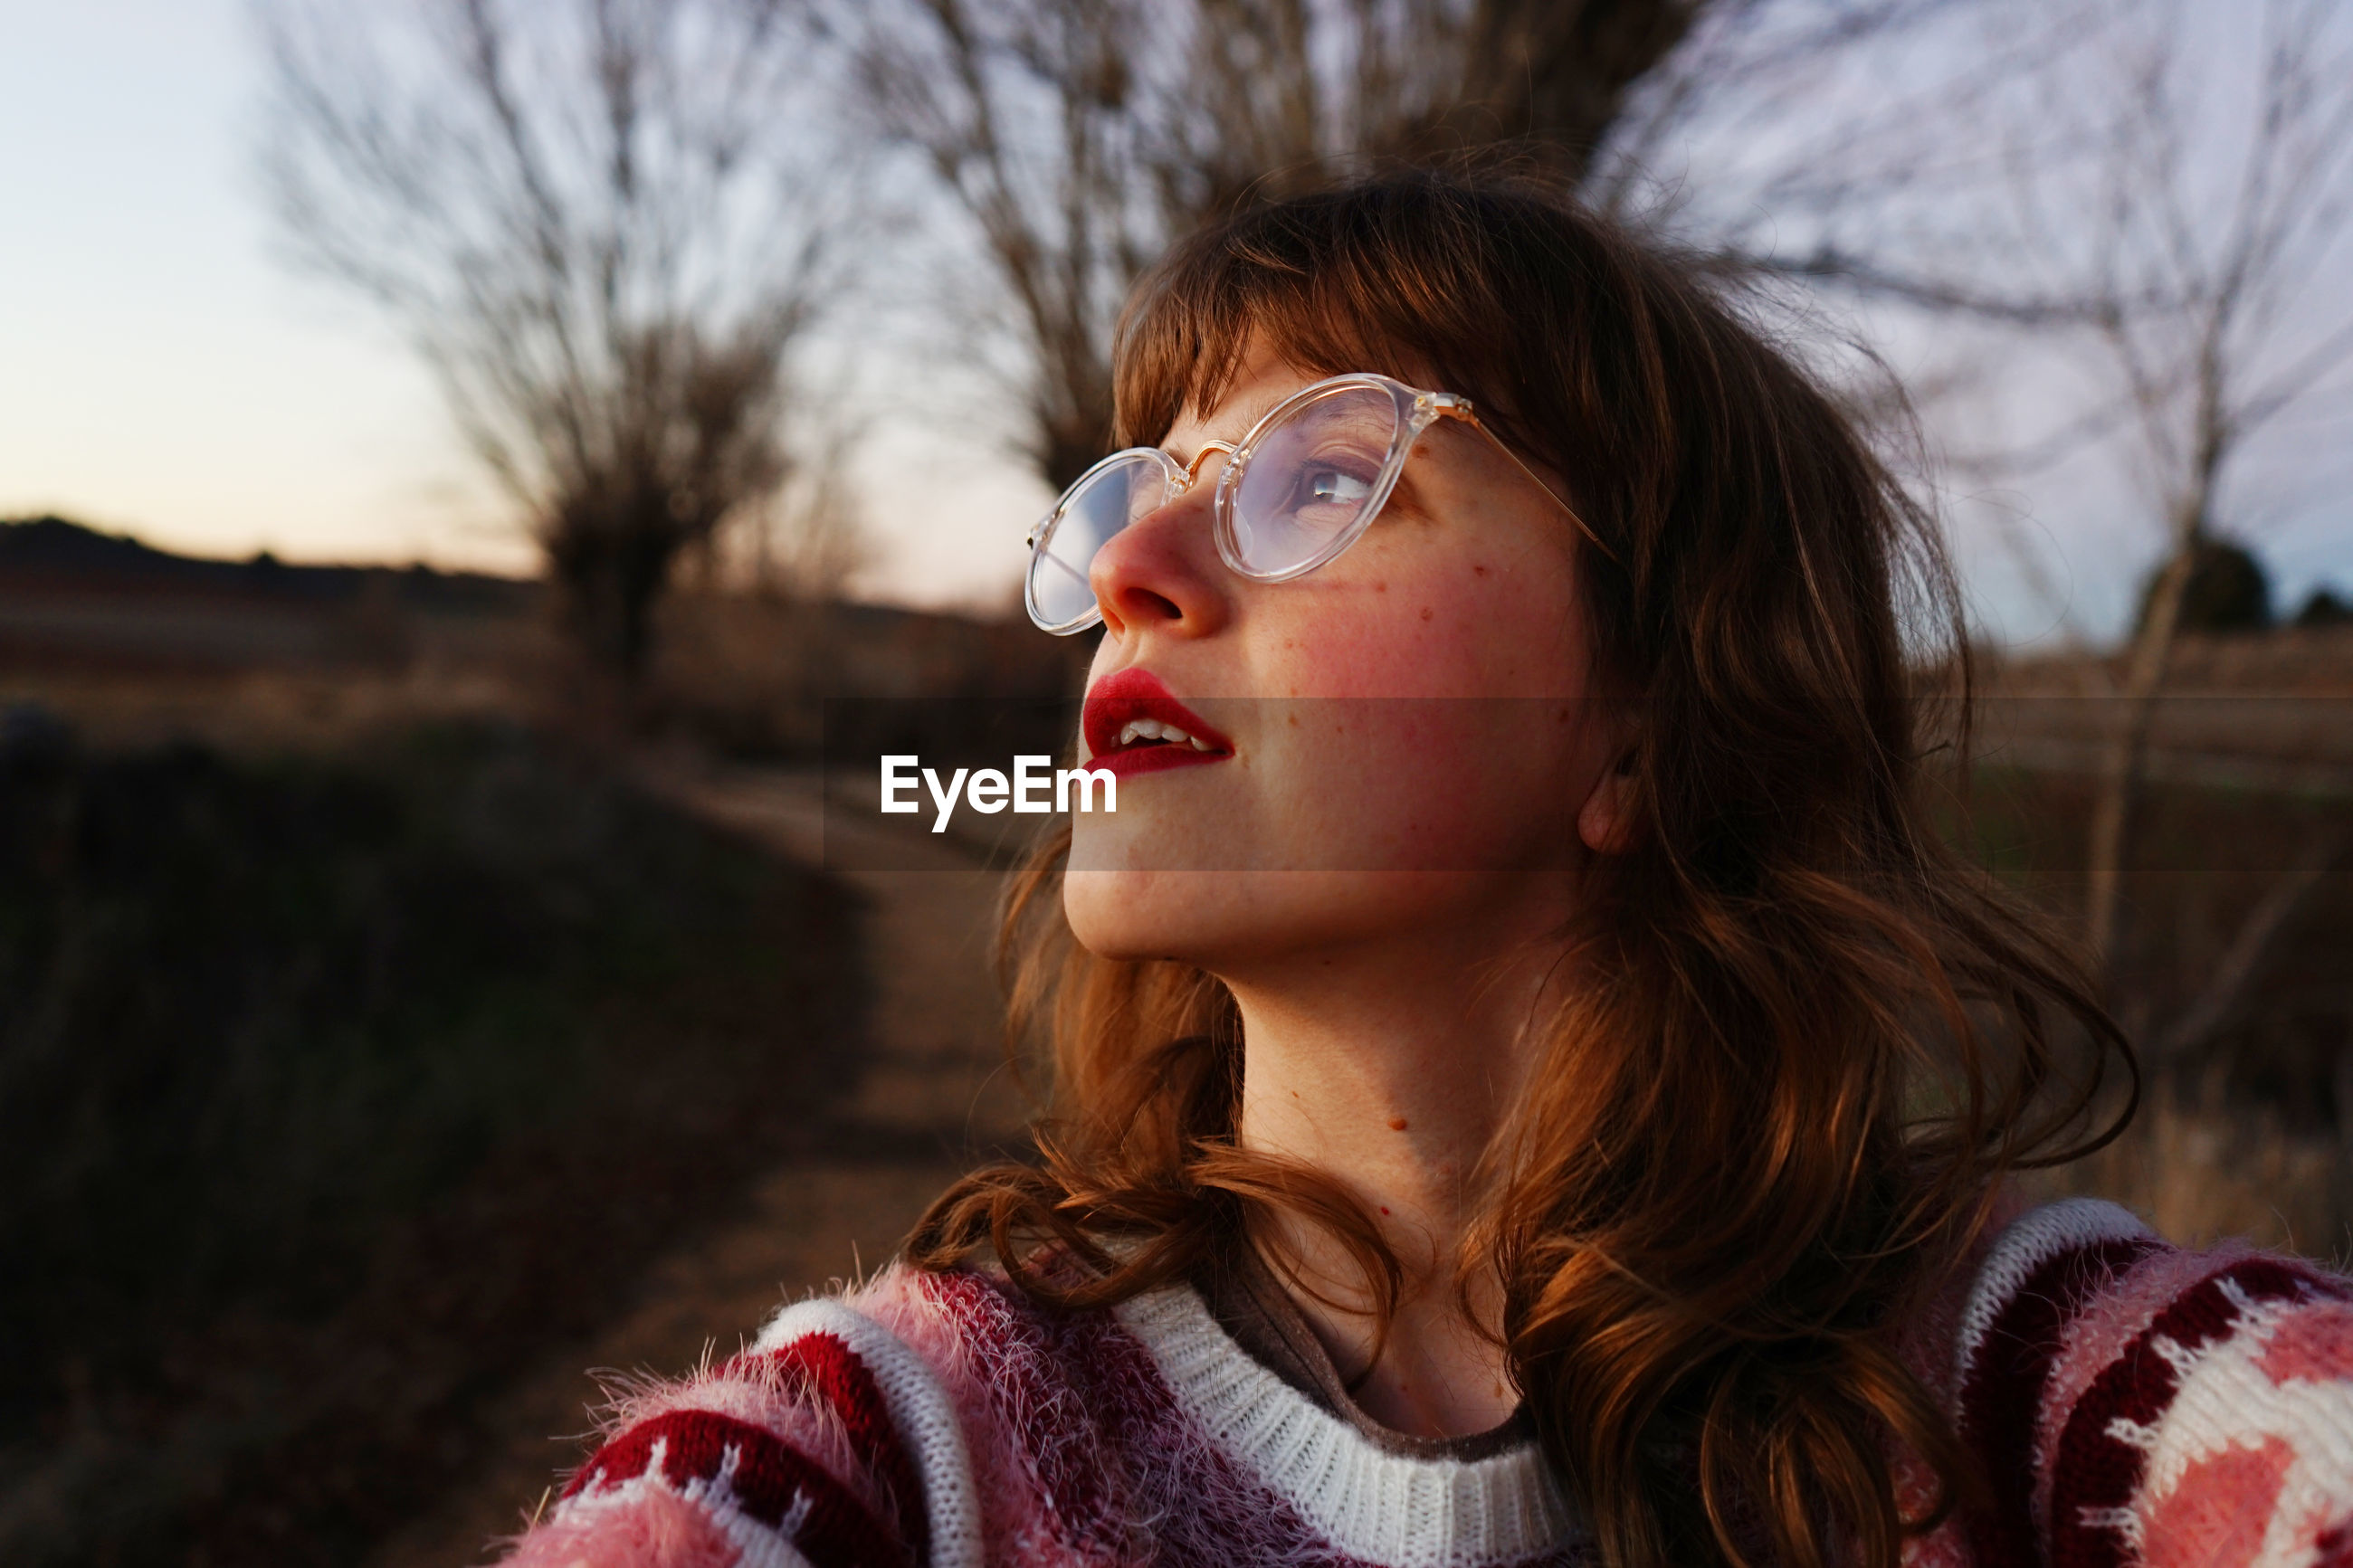 Close-up of young woman wearing eyeglasses against bare trees